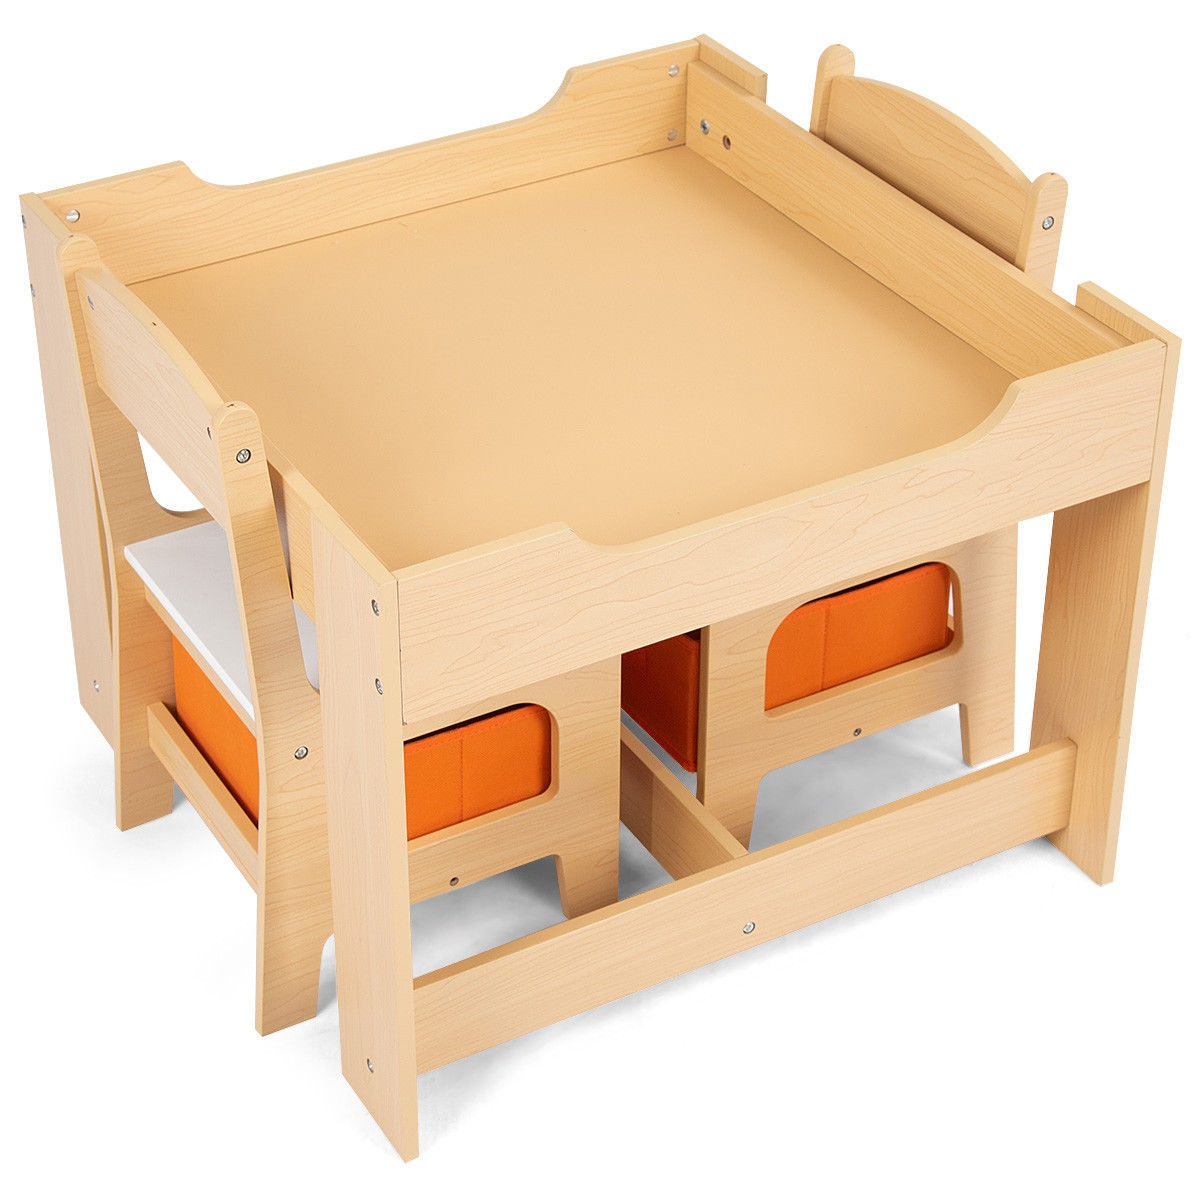 Infant Table And Chairs Kids Table And Chair Set With Storage Boxes